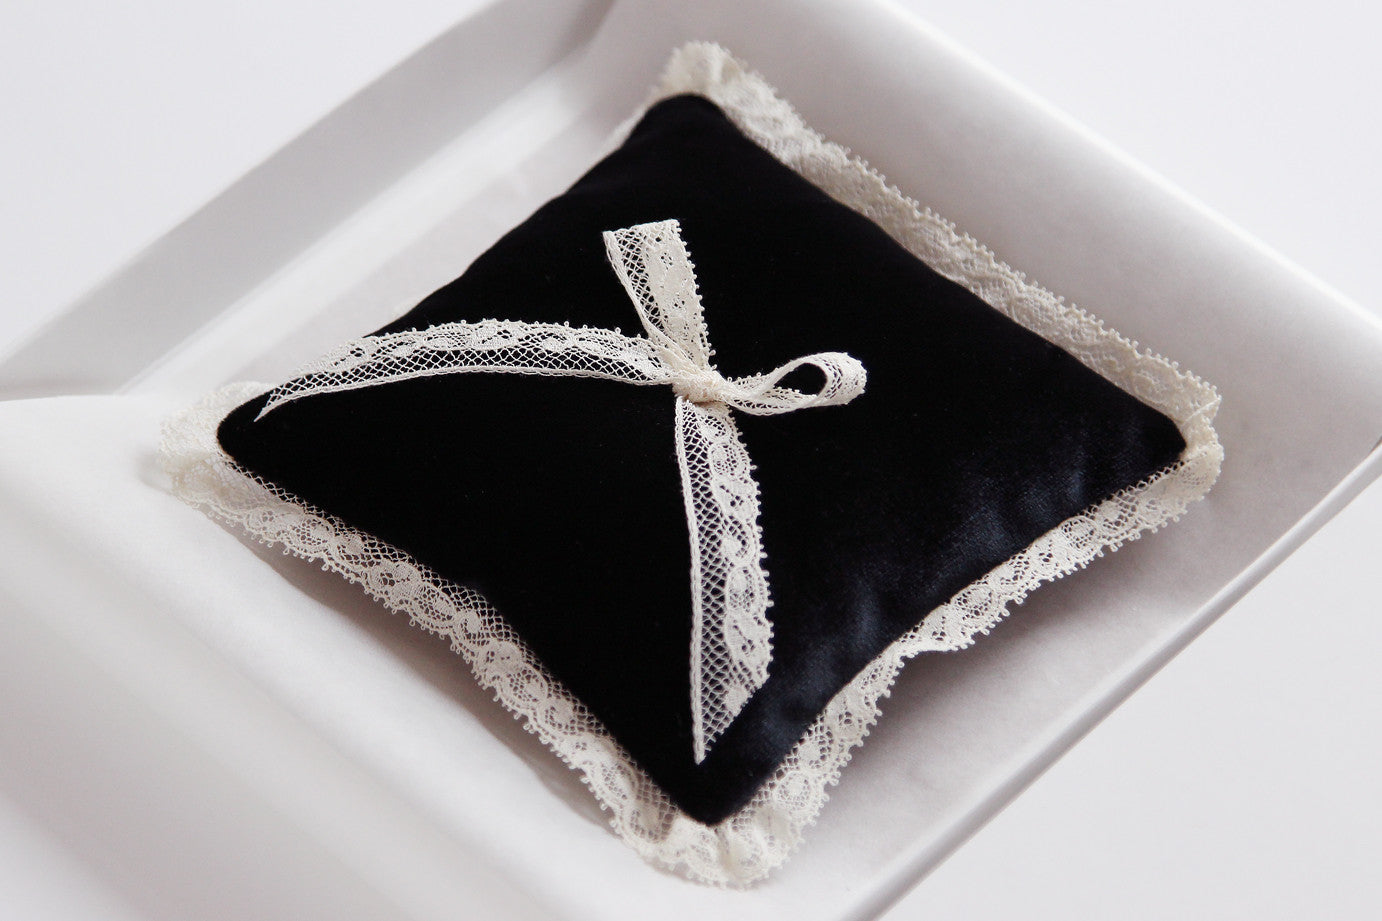 Wedding Ring Pillow Velvet Black Decorated with Lace Bow - Liumy